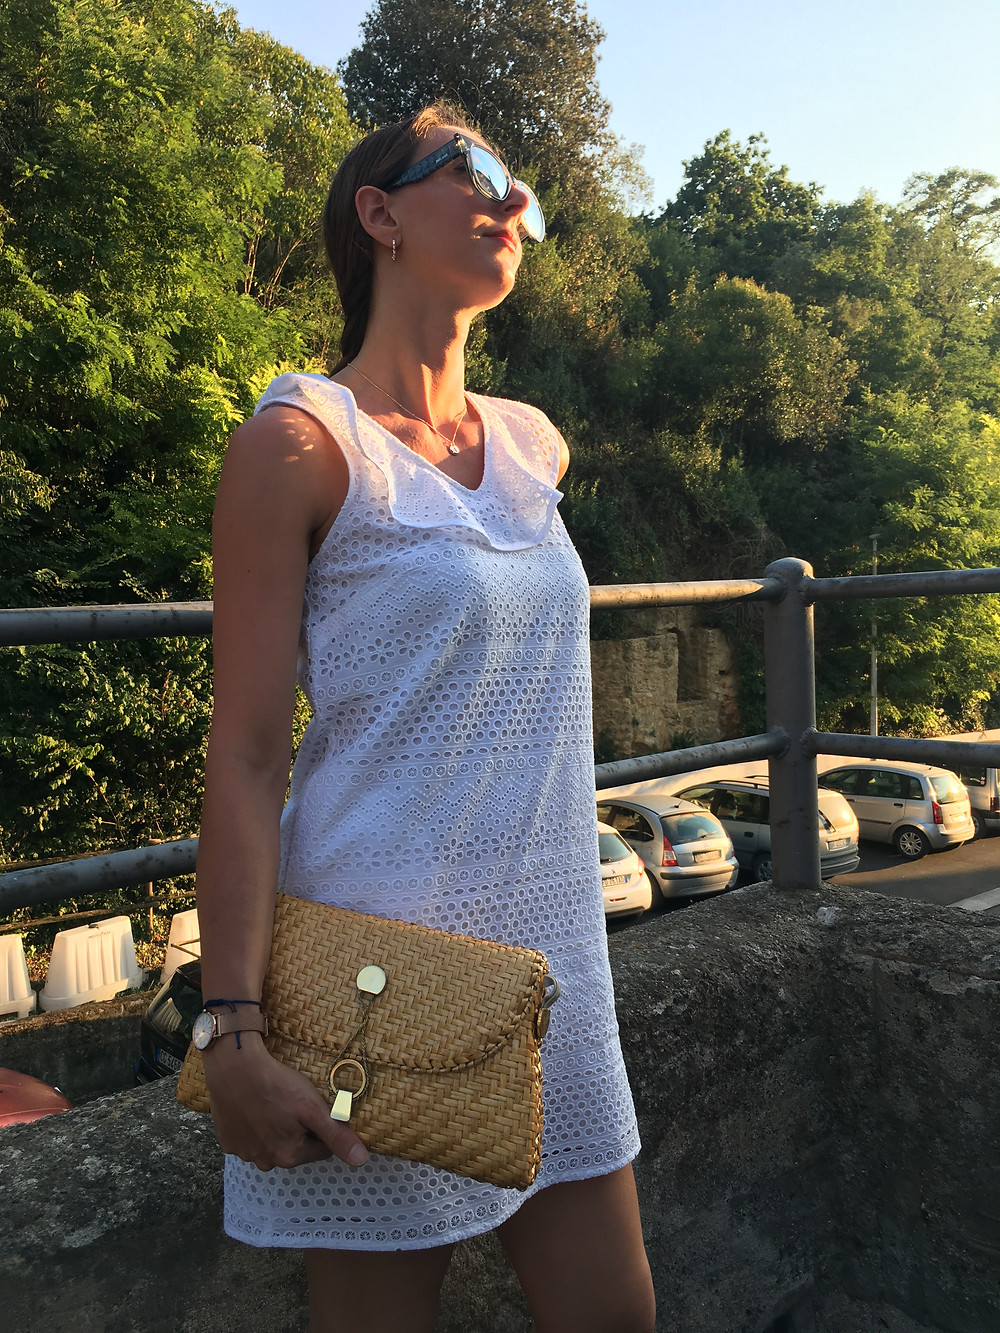 Ruffle embroidered white dress from Oliver Bonas, Missoma necklace, Astrid and Miyu earrings, vinatge clutch, Skagen watch, Just Cavalli sunglasses.